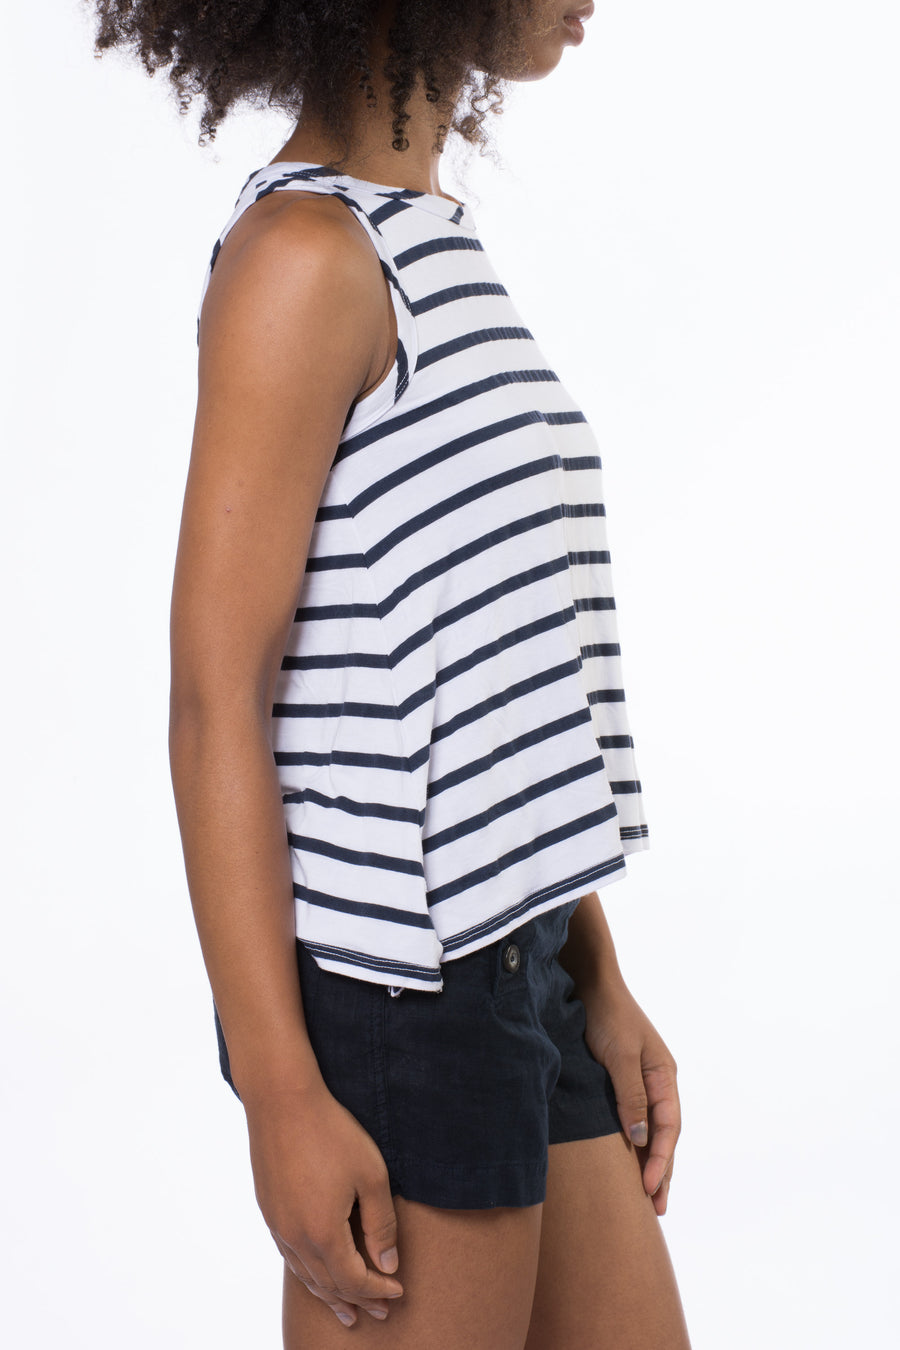 A Line Tank (Style NAUT-01, White & Blue Stripes) by Hard Tail Forever